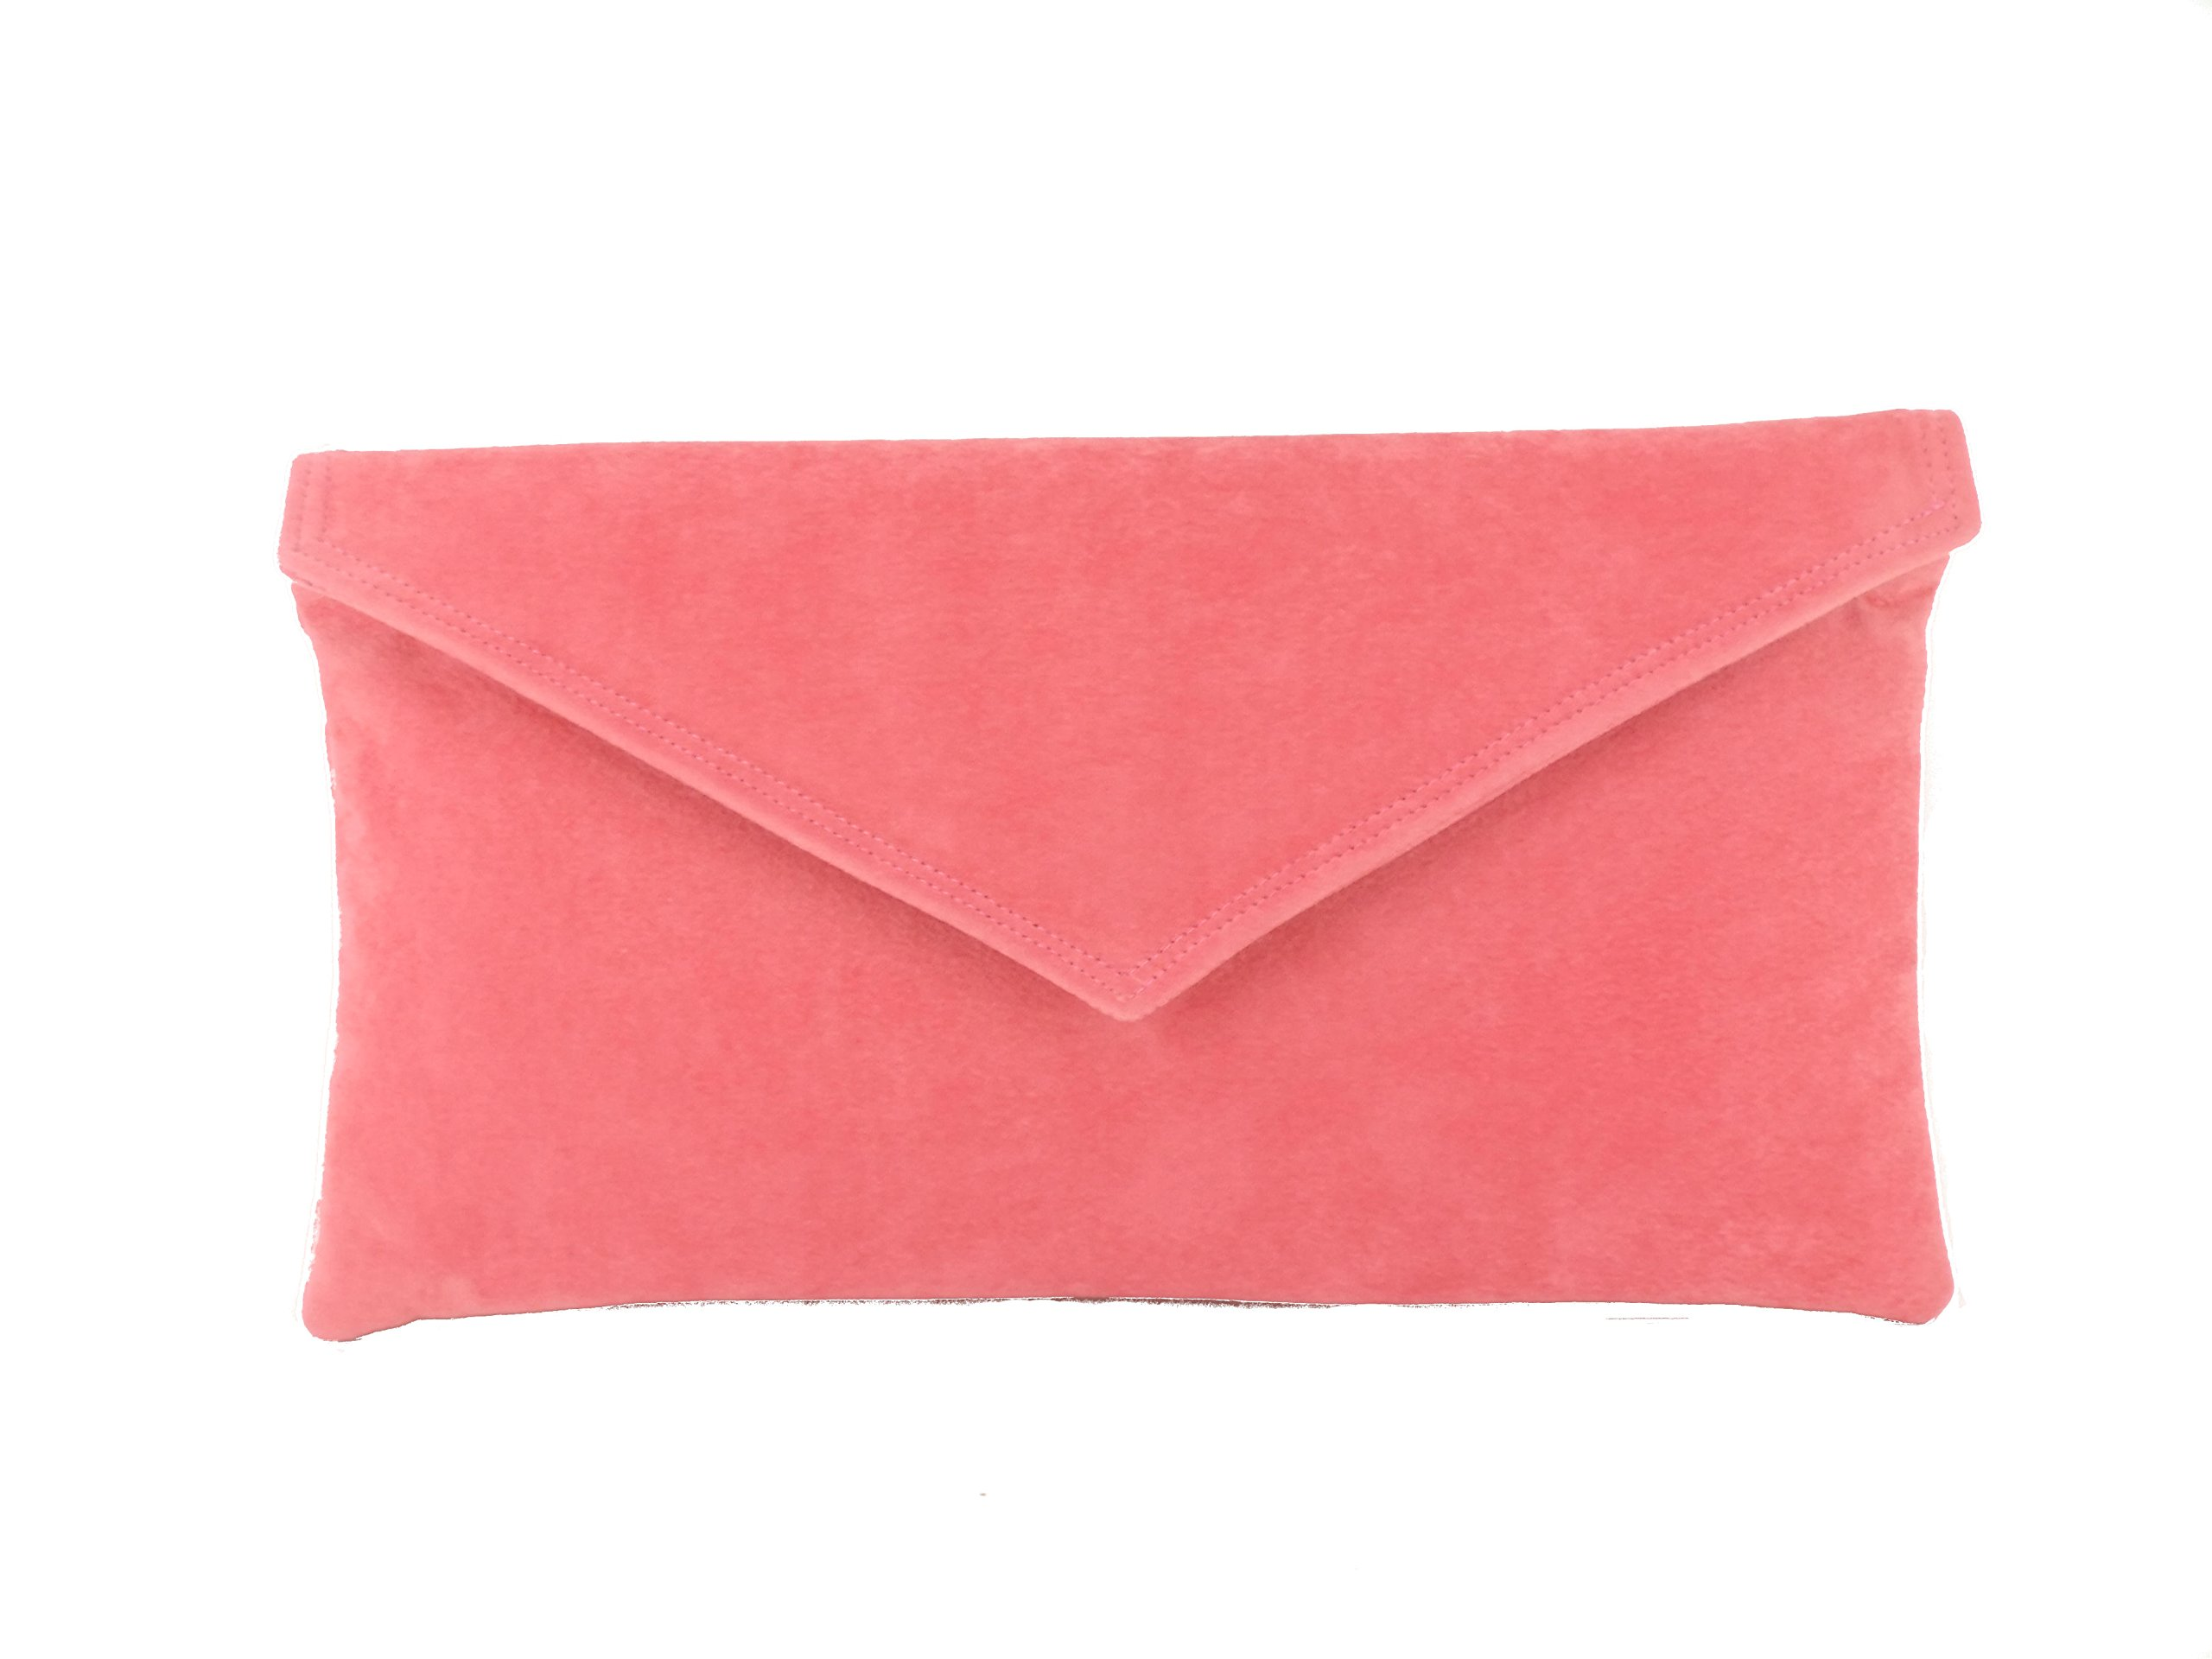 Loni Womens Neat Envelope Faux Suede Clutch Bag/Shoulder Bag in Coral Pink